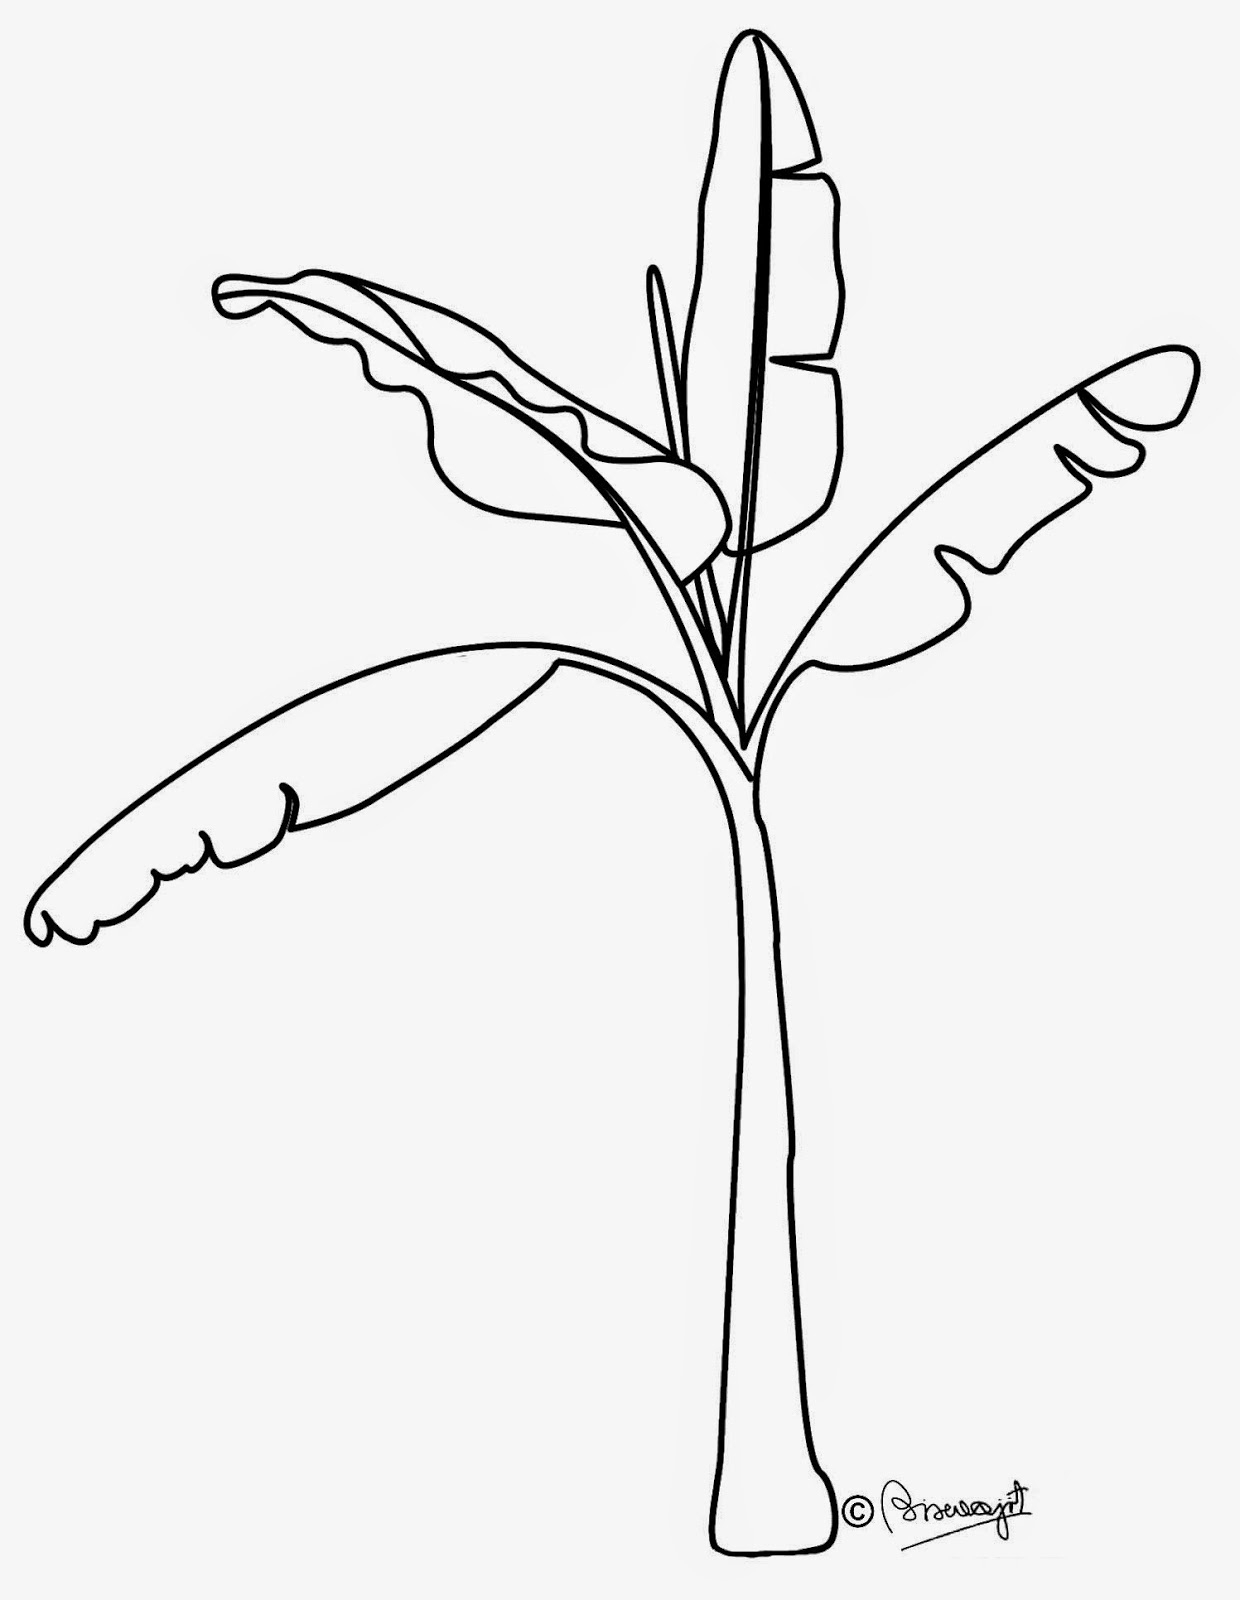 1240x1600 Banana Tree Pencil Drawing Drawing Banana Tree Clipart